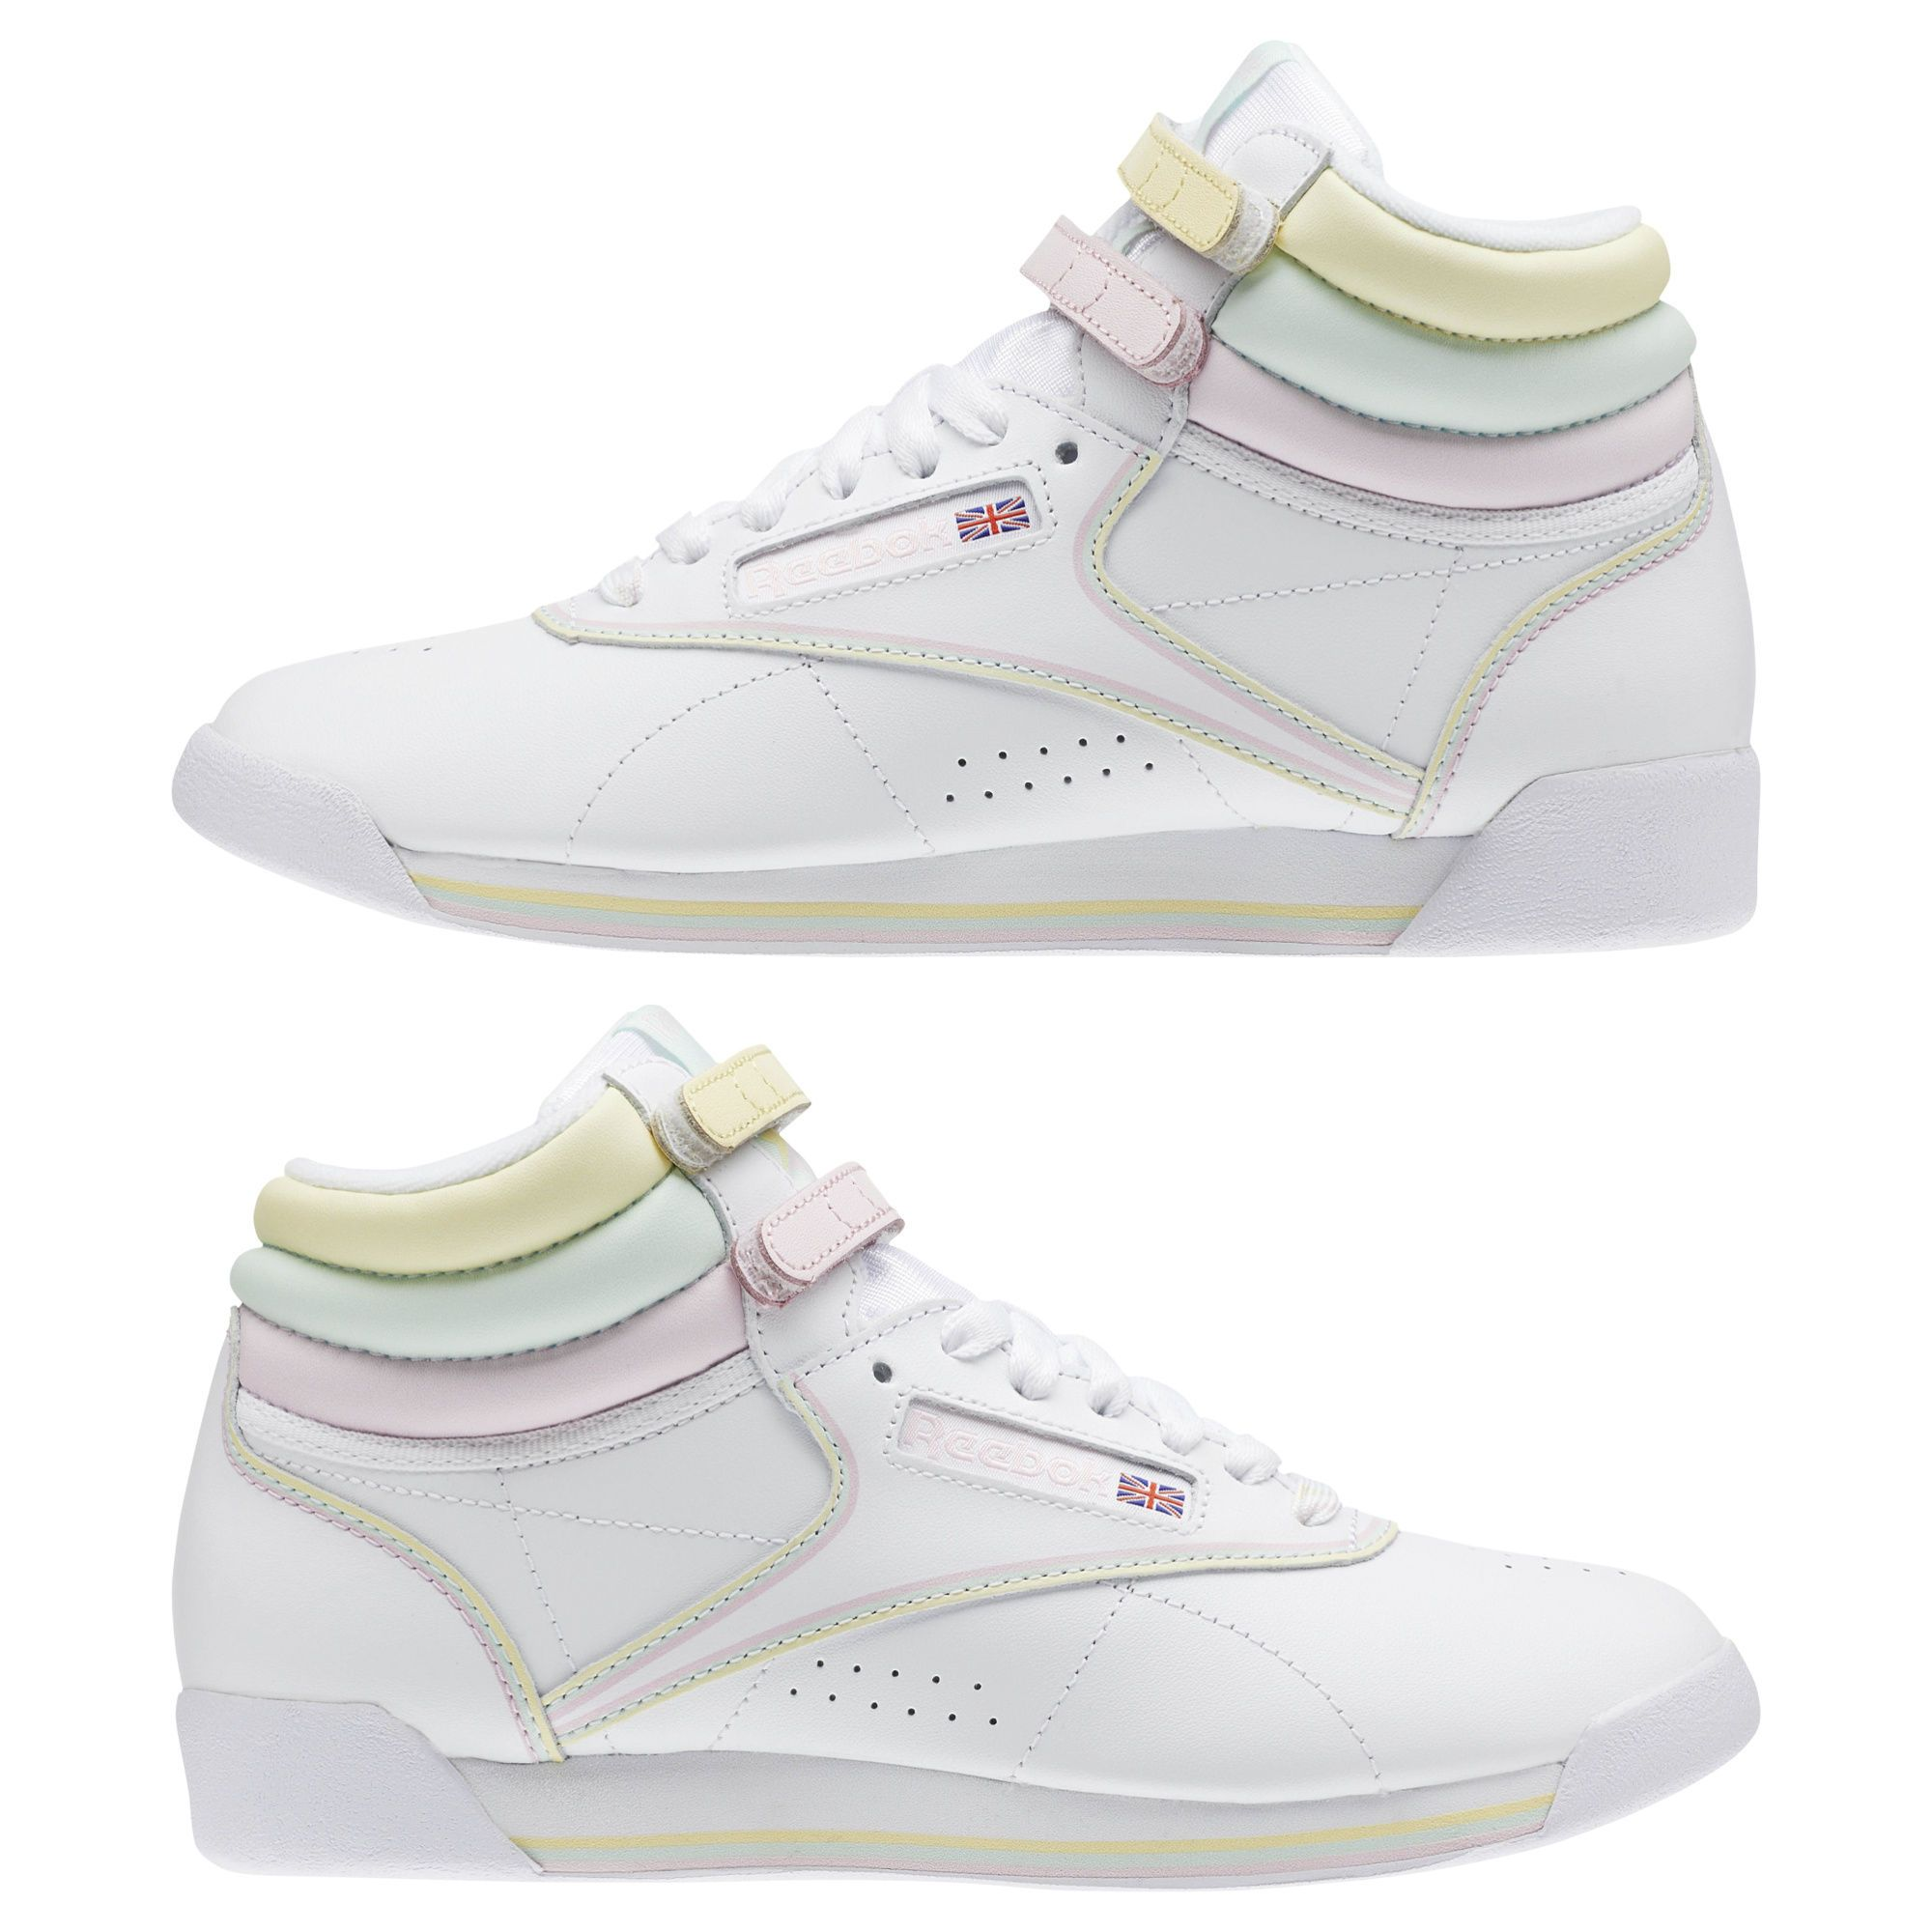 5d965f3bf3d Reebok Women s Freestyle Hi x GLOW in Glow   White   Pink   Green ...